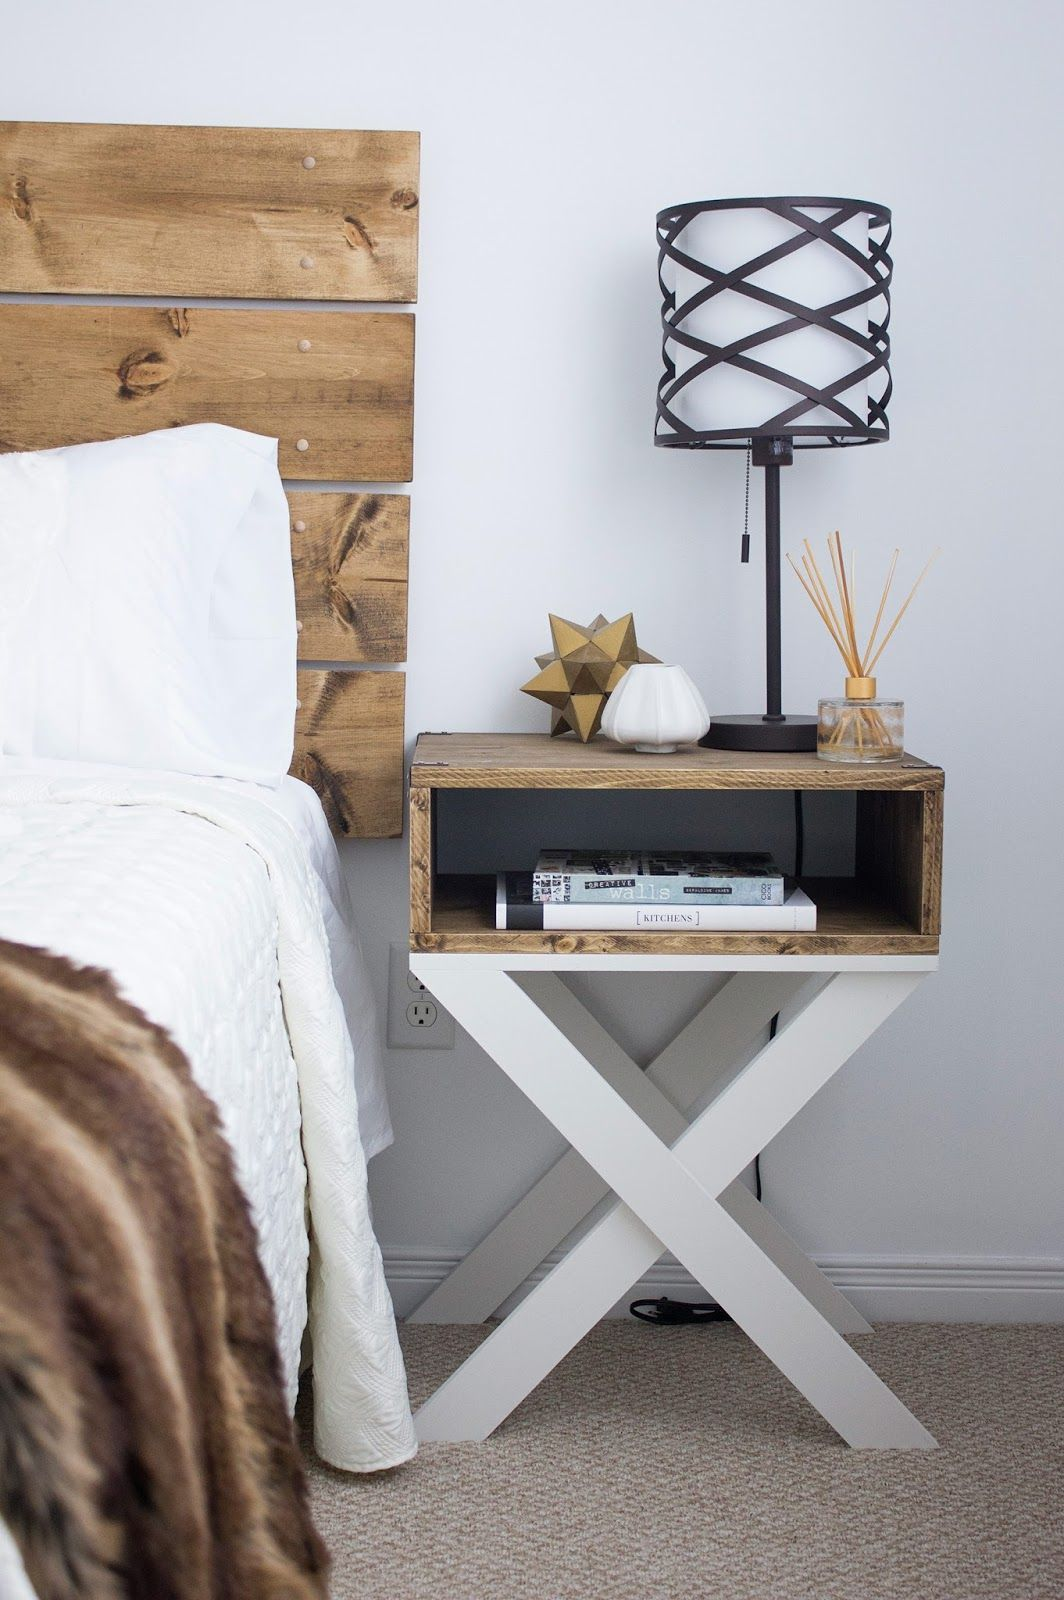 Ideas For Nightstands diy nighstand dark wood with x-legs | kels place | pinterest